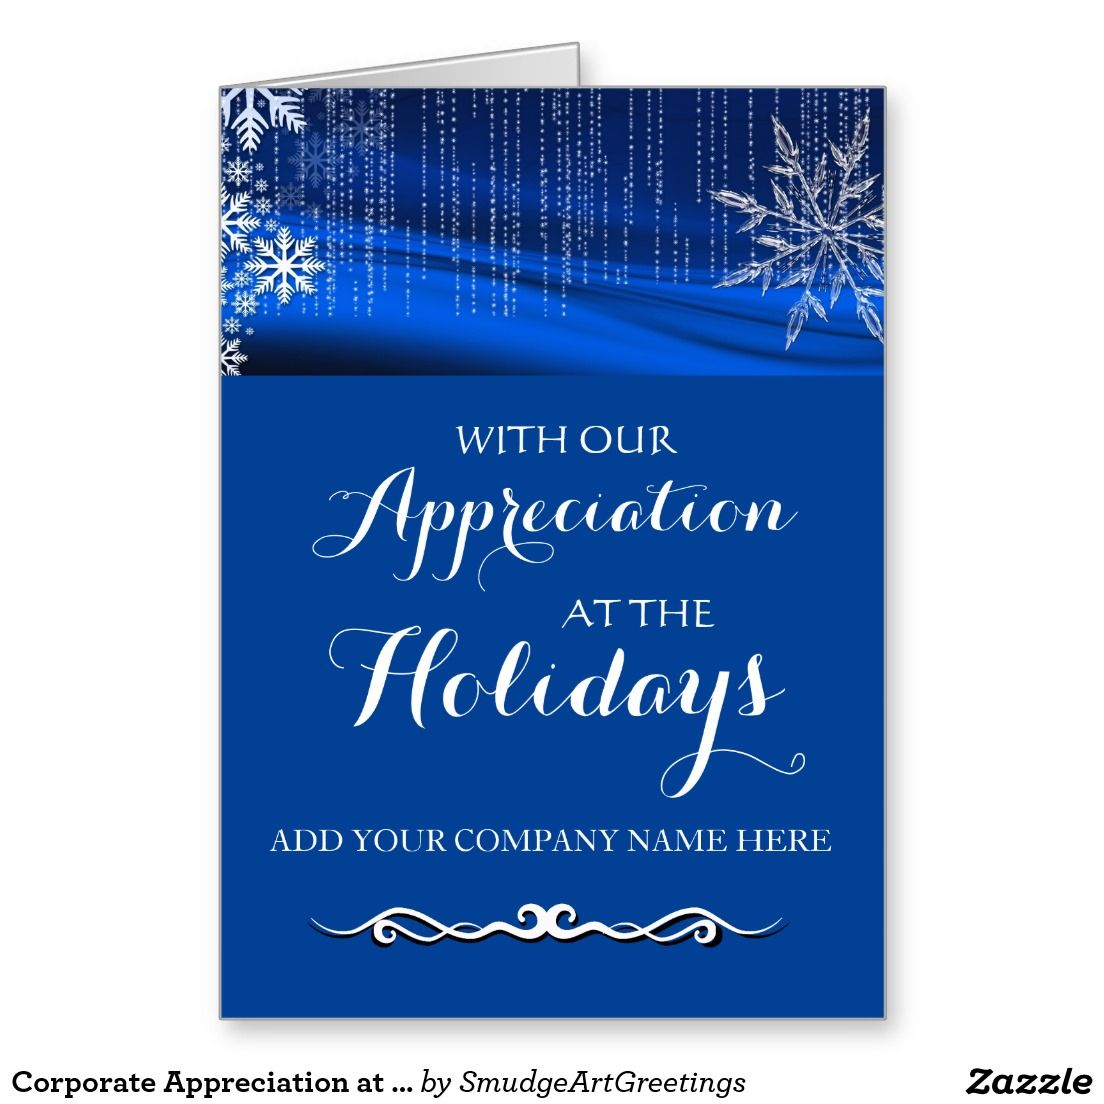 Corporate Appreciation at the Holidays Snowflakes Greeting Card ...